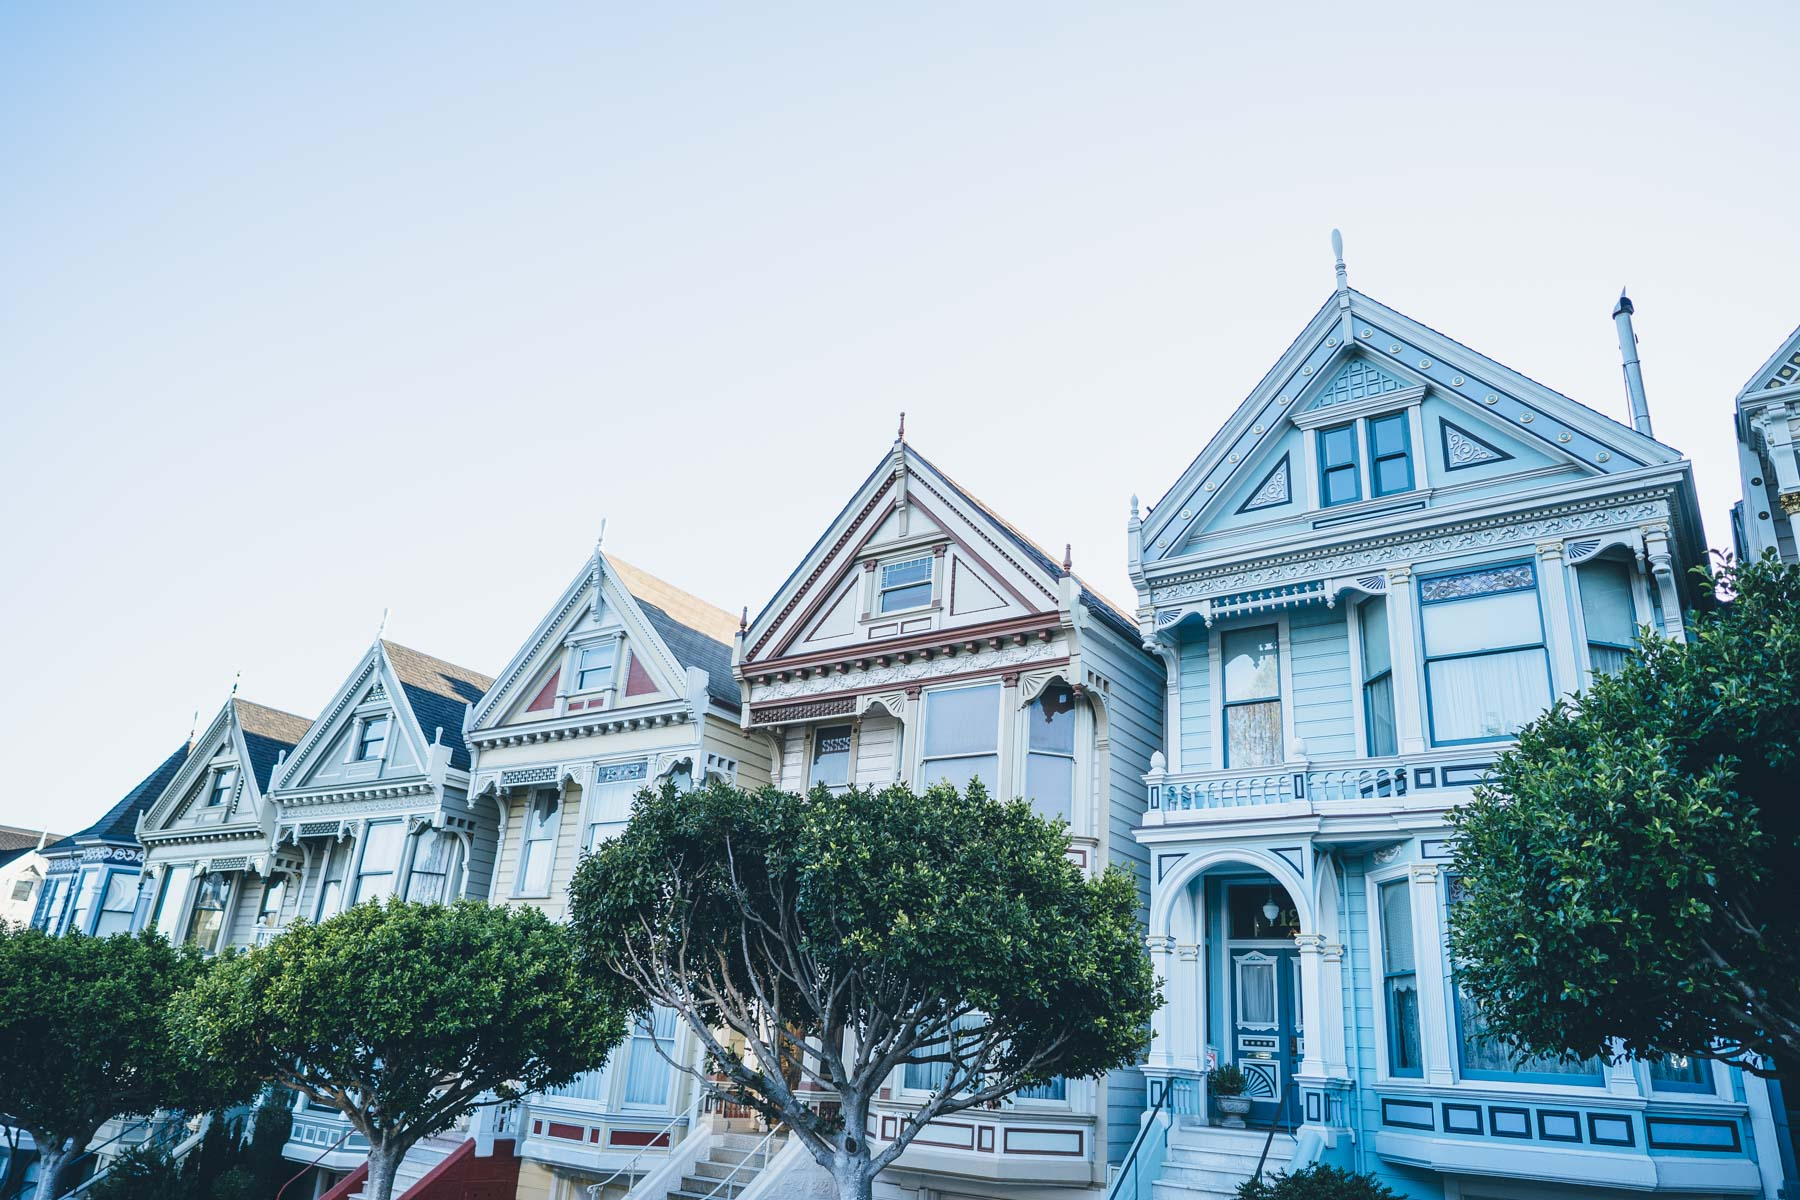 Jess Ann Kirby visits a San Francisco landmark on her recent trip, the Painted Ladies